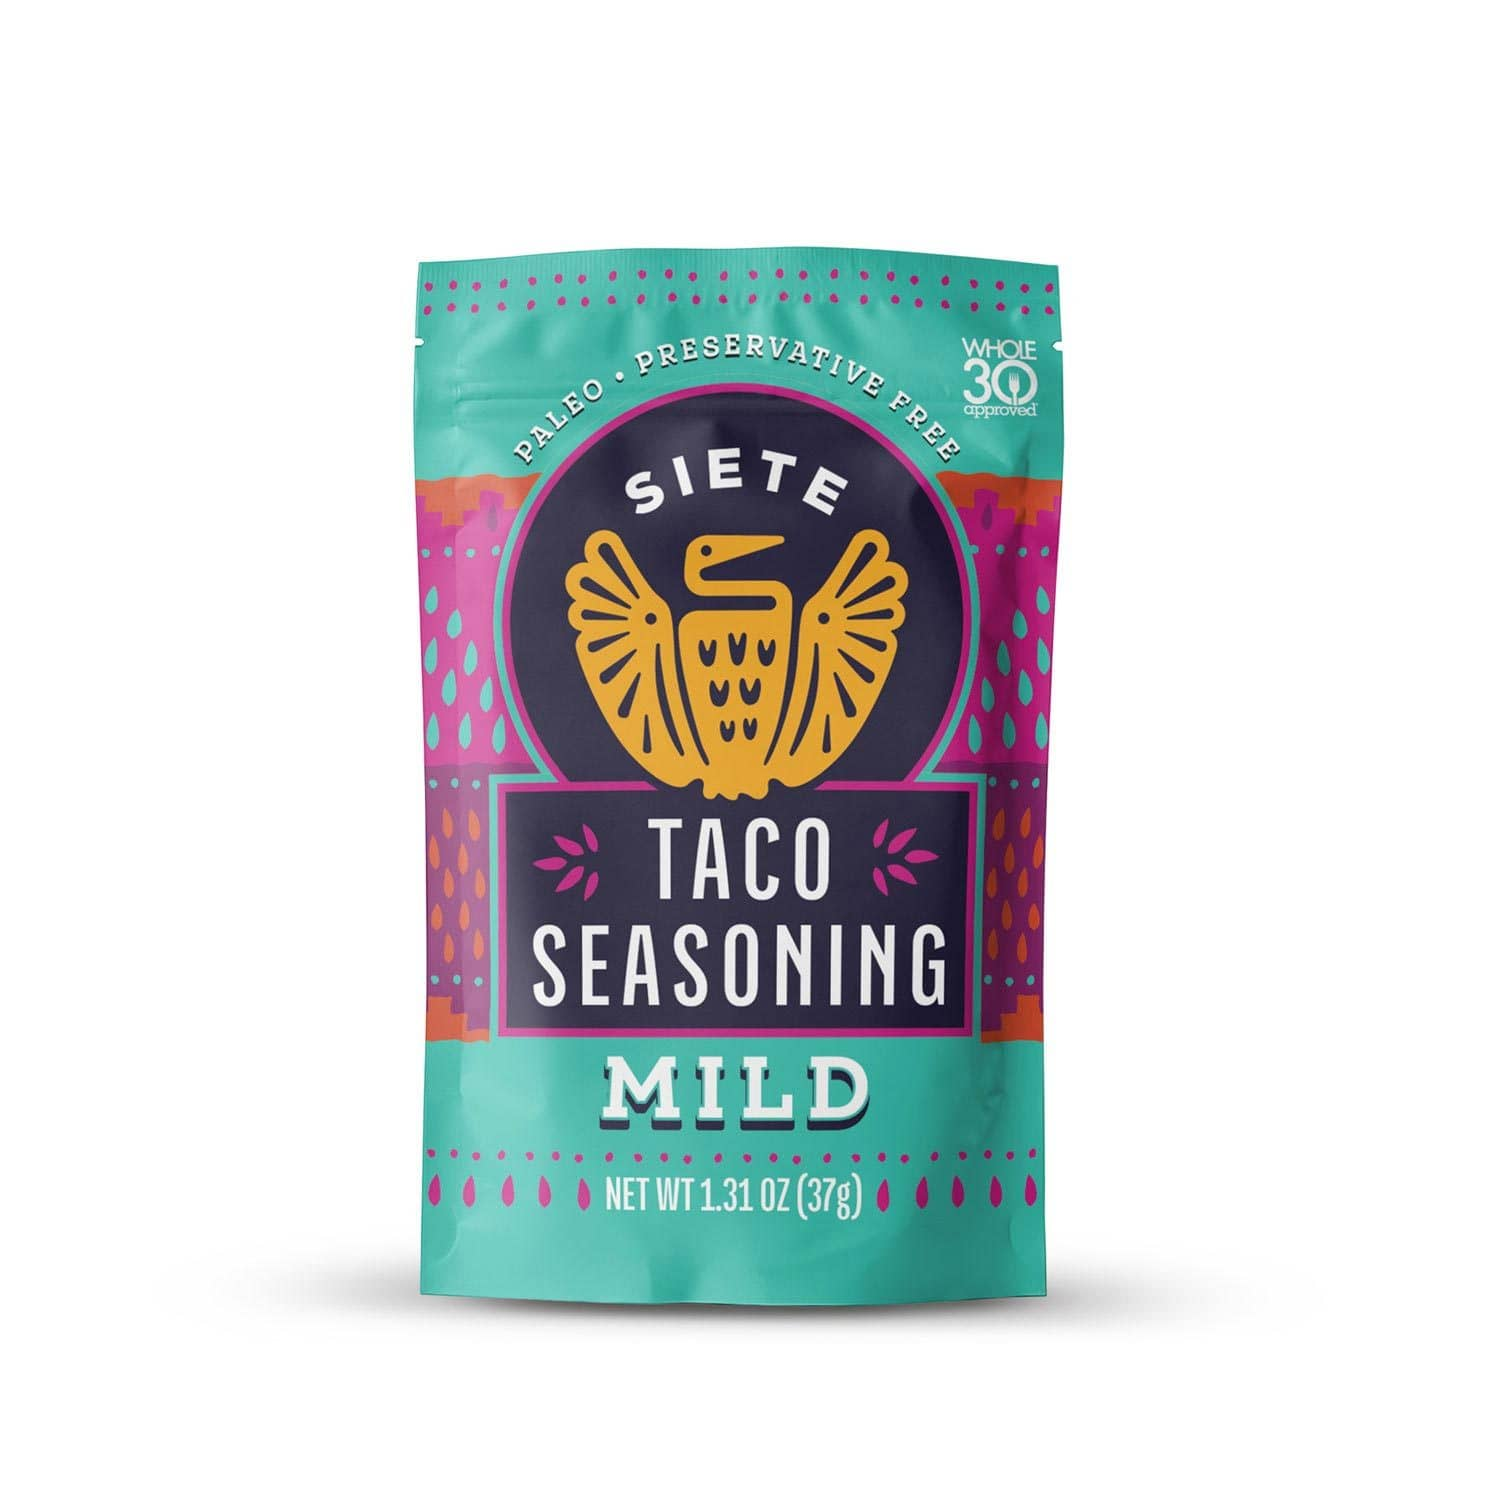 Siete Mild Taco Seasoning Whole30